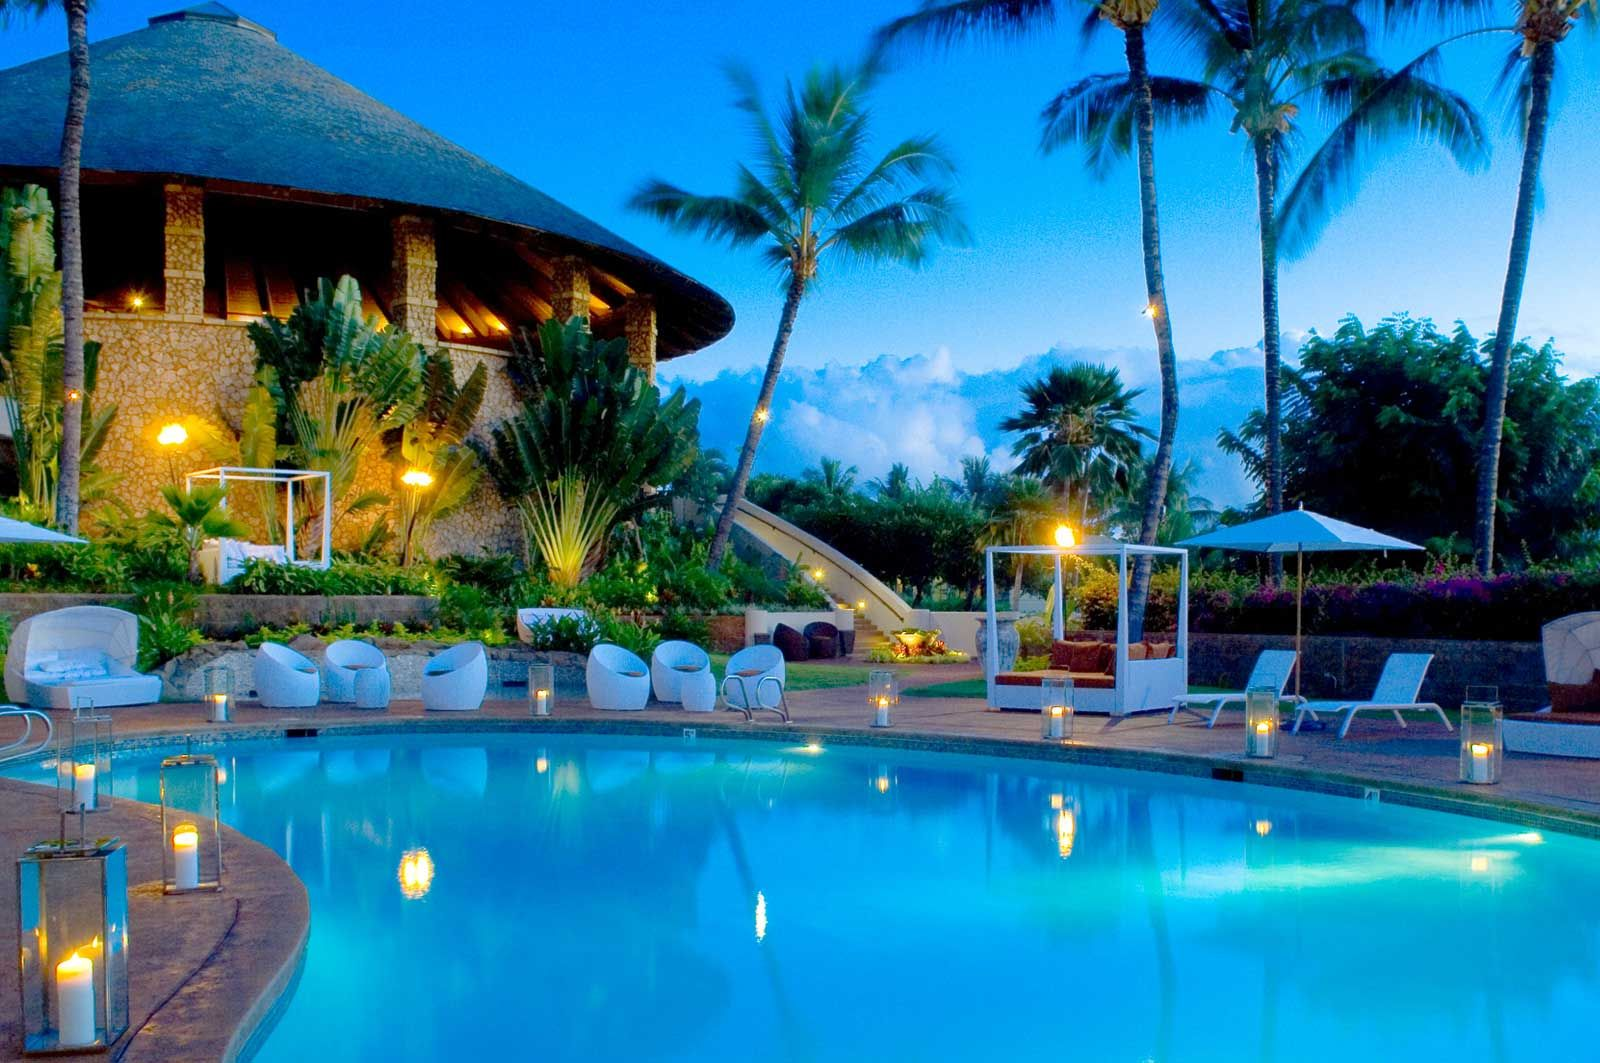 Hotel wailea luxury boutique hotel in maui hawaii our for Boutique hotel vacations